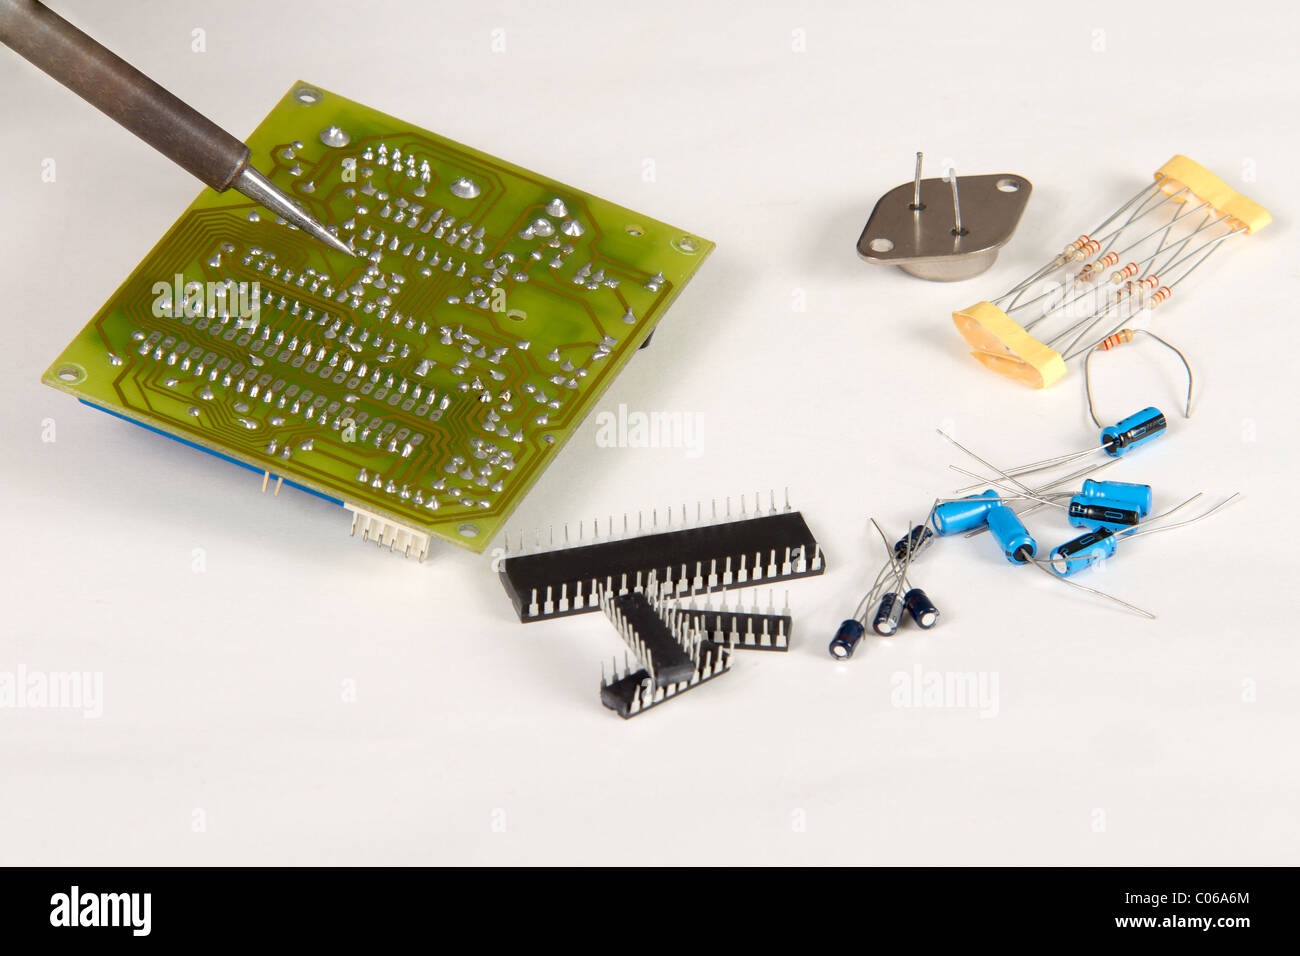 Green Tech Fix Stock Photos Images Alamy Circuit Board Engineer Soldering Surrounded By Spare Components Image